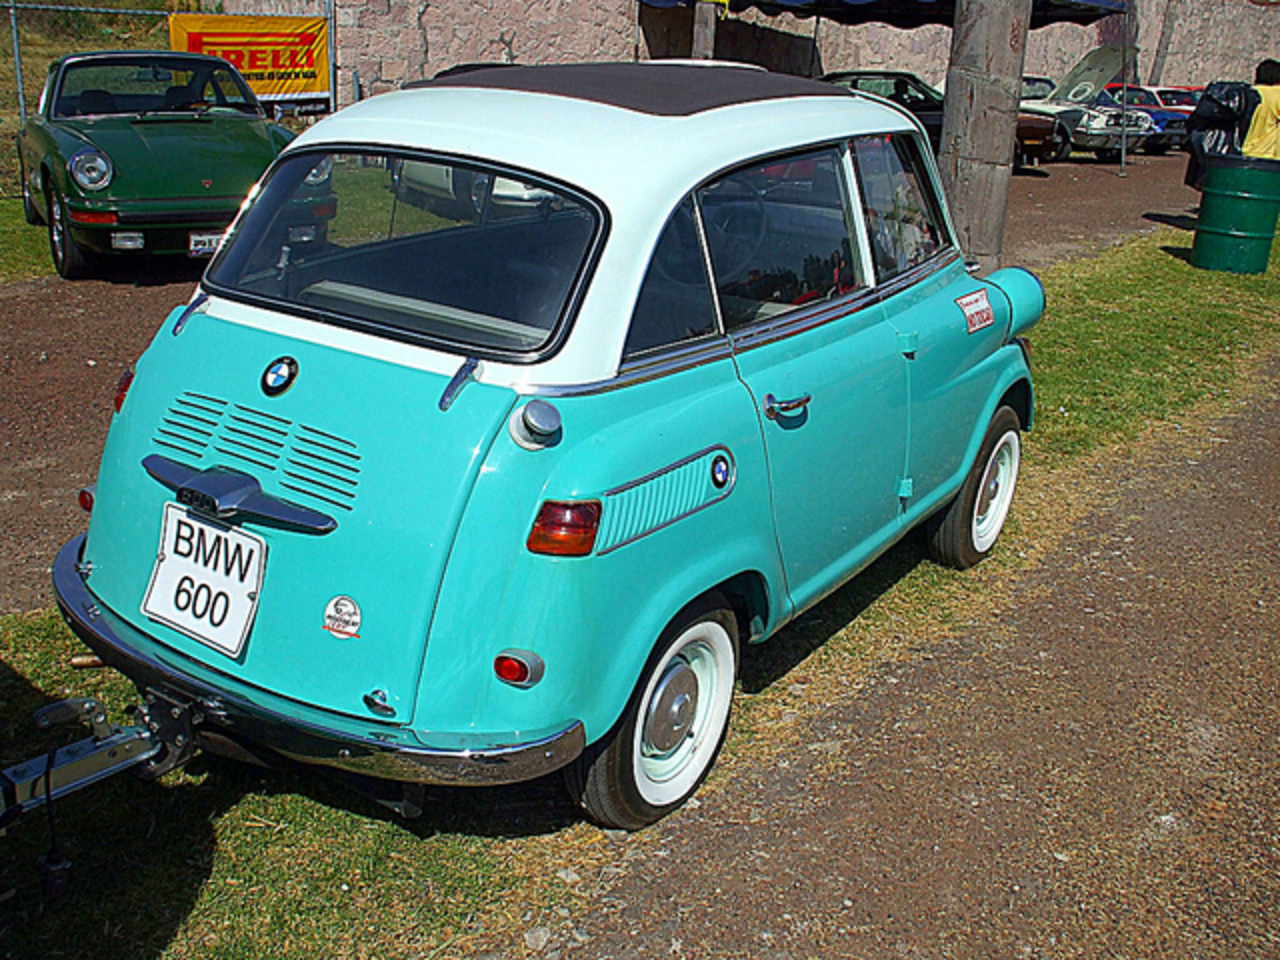 BMW Isetta 600 Limo | Flickr - Photo Sharing!